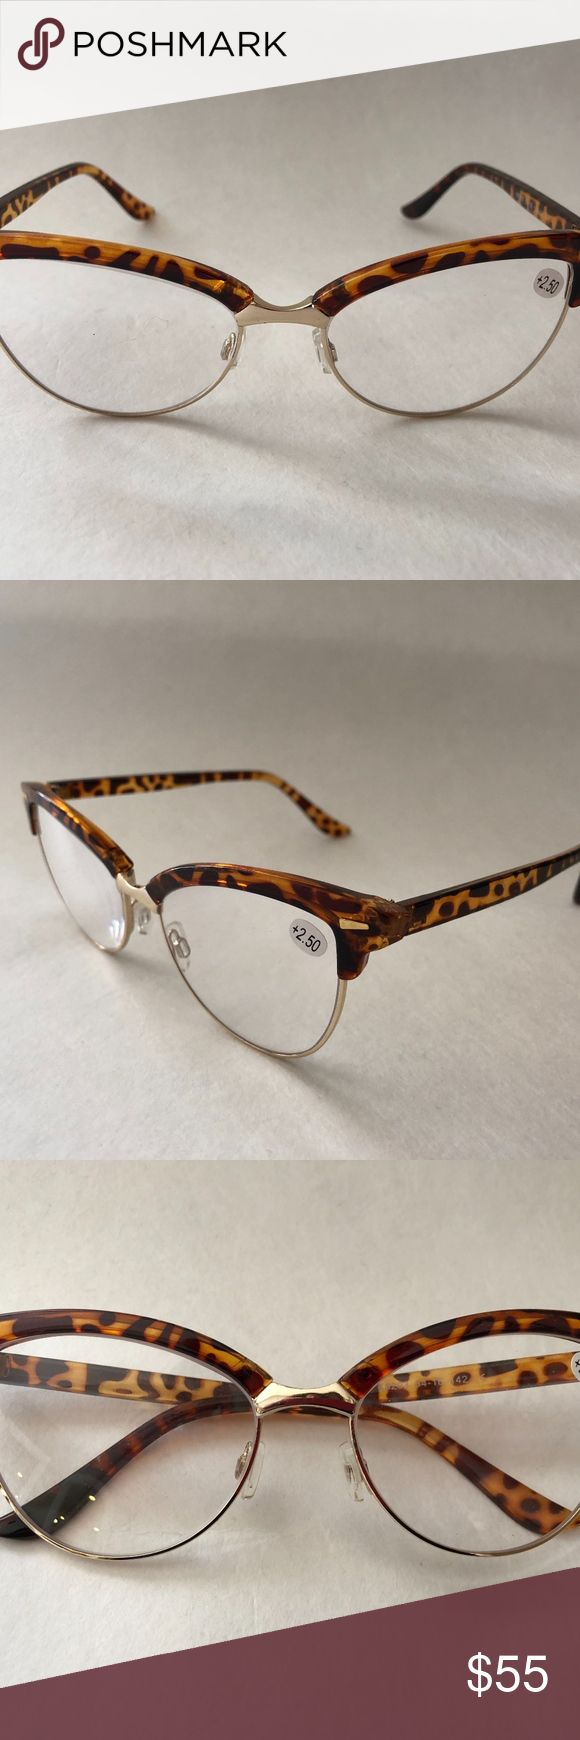 "FASHION TORTOISE CAT EYE READERS - NEW SUPER CUTE ""CAT EYE"" READING GLASSES  POWER +2.50  TORTOISE SHELL WITH GOLD RIM  BRAND NEW AND NEVER WORN  COMES WITH ORIGINAL MICROFIBER BAG  PERFECT CONDITION SOOLALA Accessories Glasses"